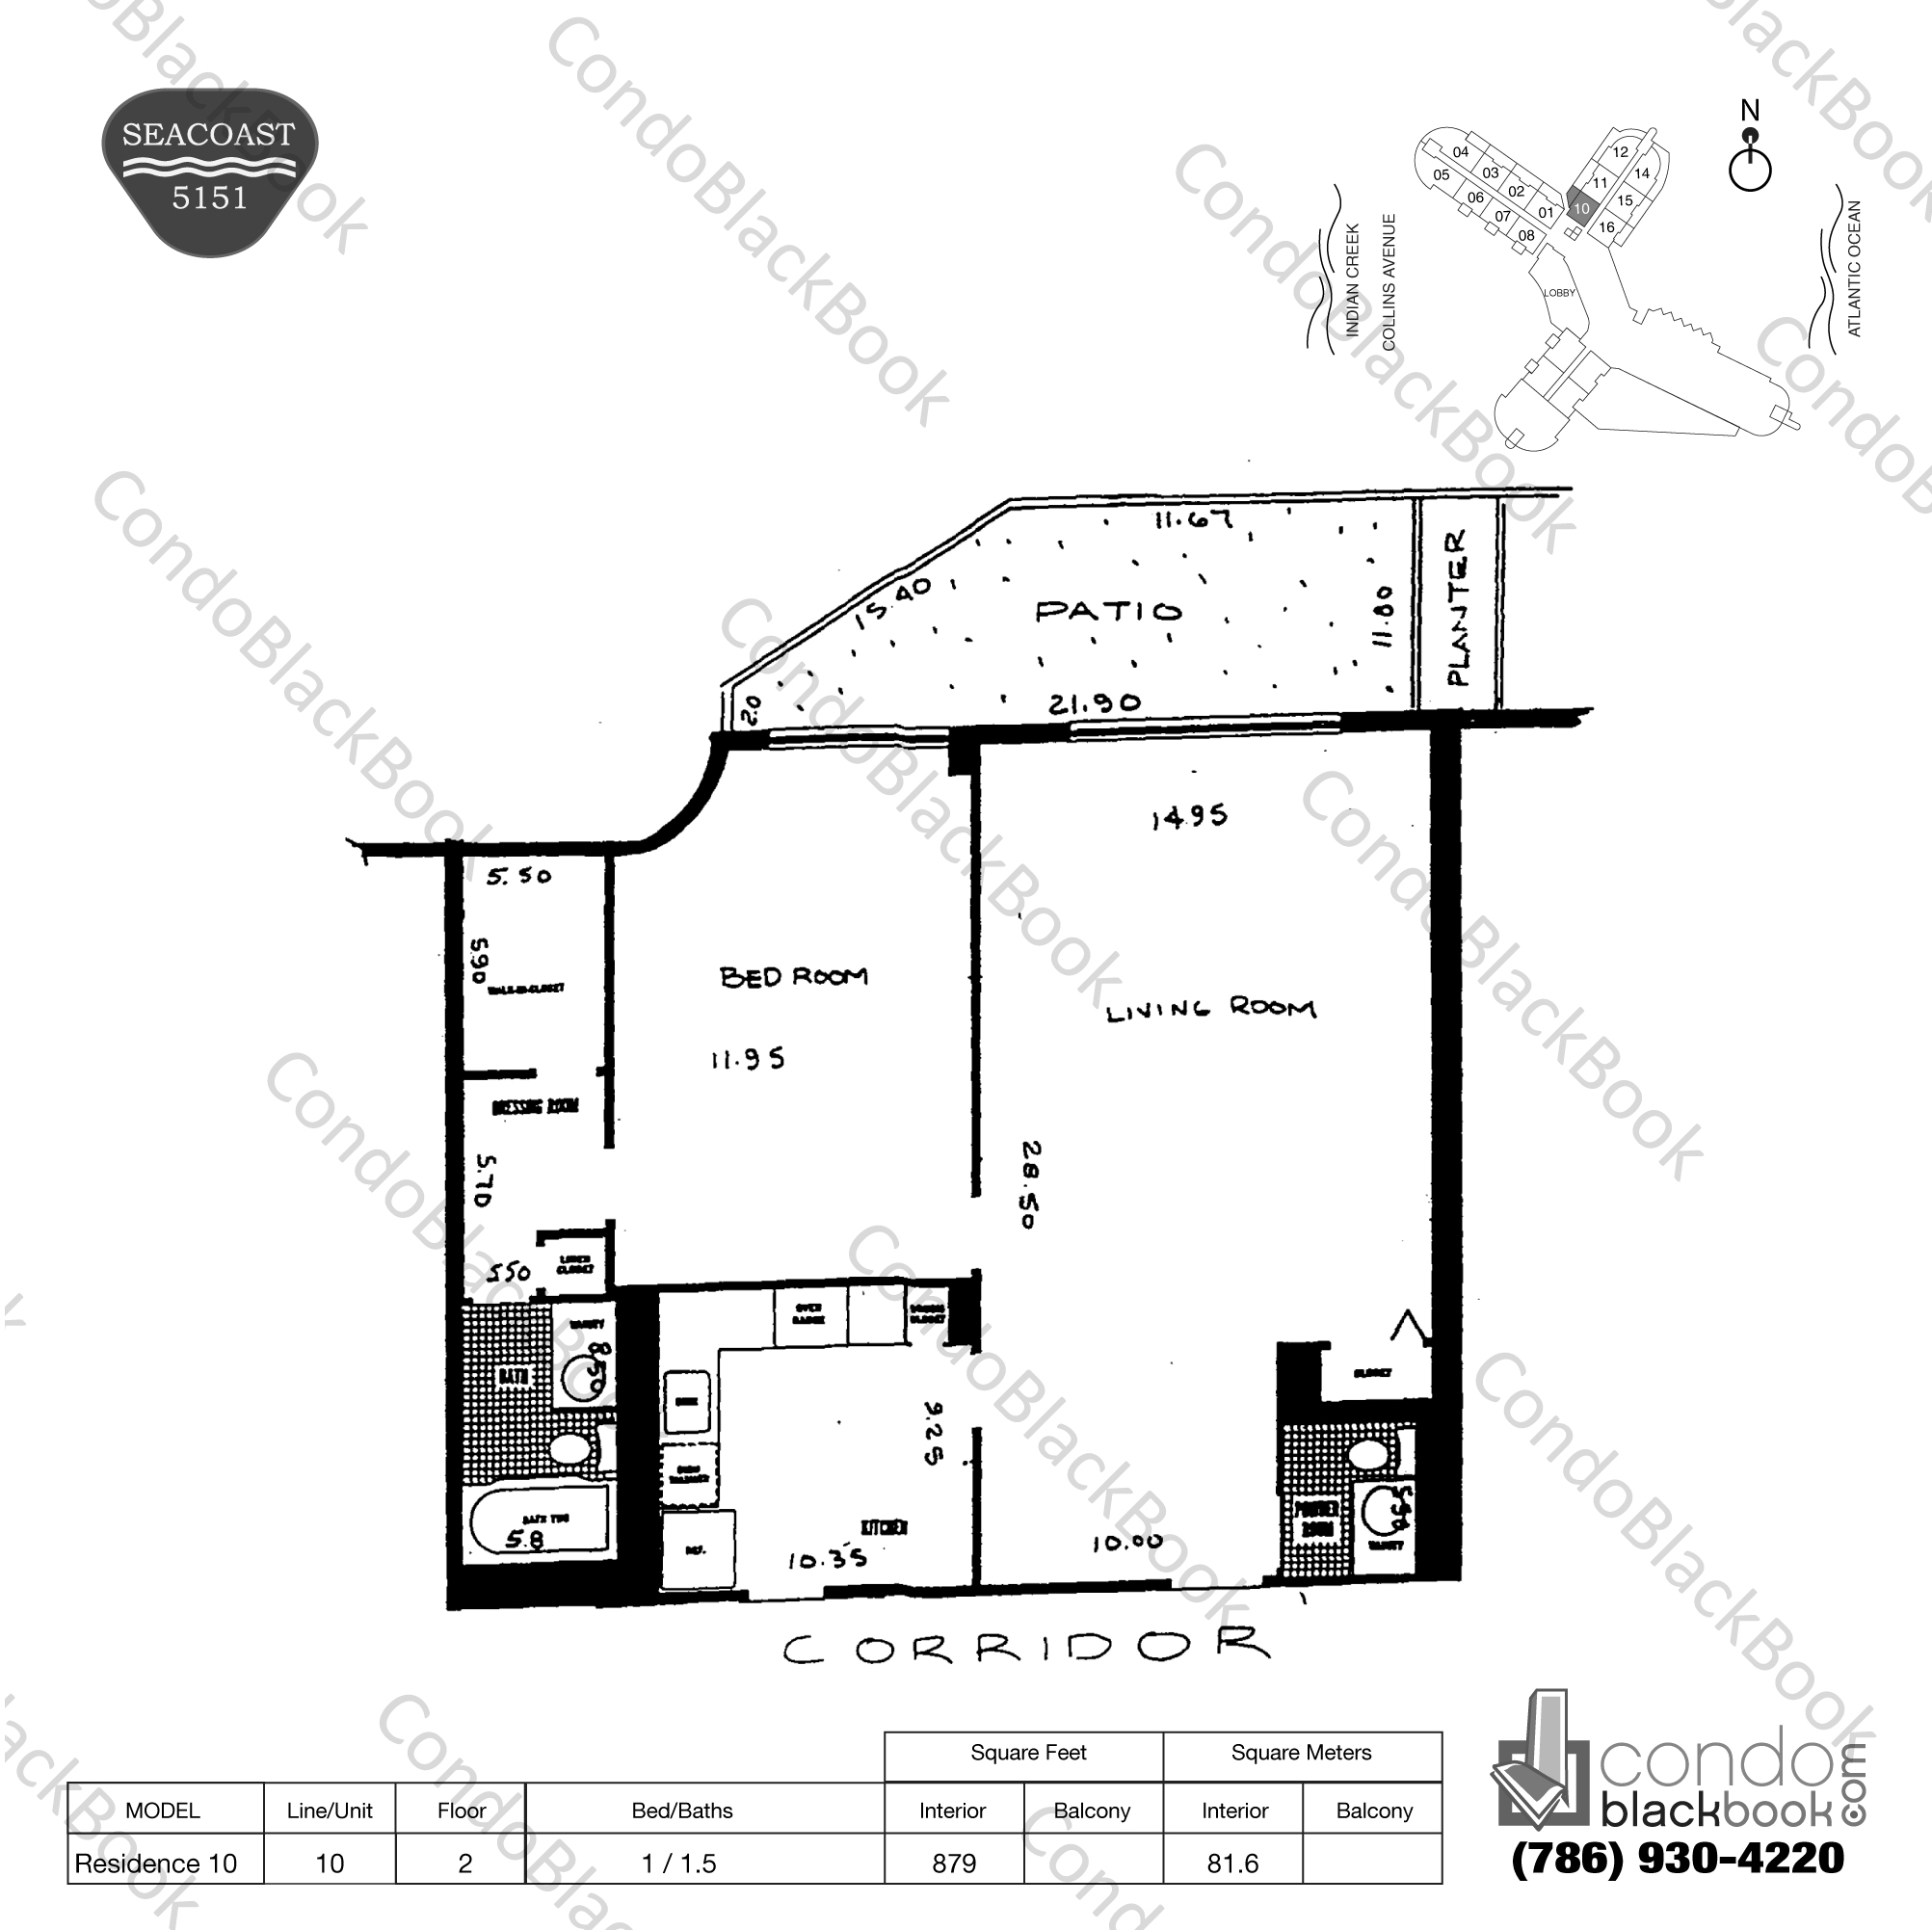 Floor plan for Seacoast 5151 Mid-Beach Miami Beach, model Residence 10, line 10, 1 / 1.5 bedrooms, 879 sq ft